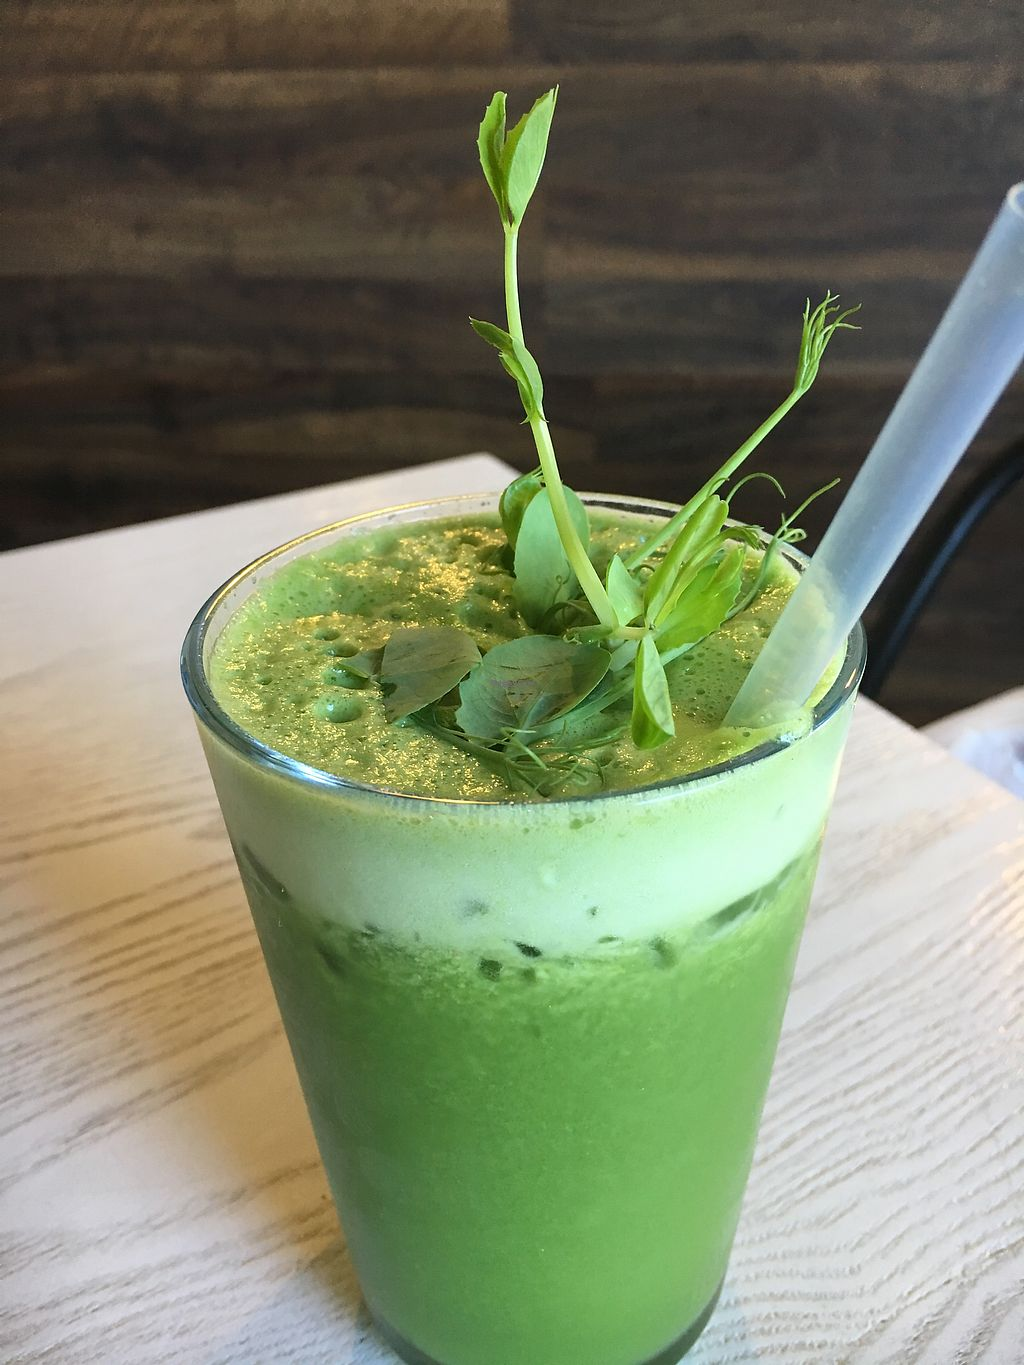 """Photo of Mr Black Juicery  by <a href=""""/members/profile/VeganBec"""">VeganBec</a> <br/>Green Smoothie <br/> December 16, 2017  - <a href='/contact/abuse/image/78188/335964'>Report</a>"""